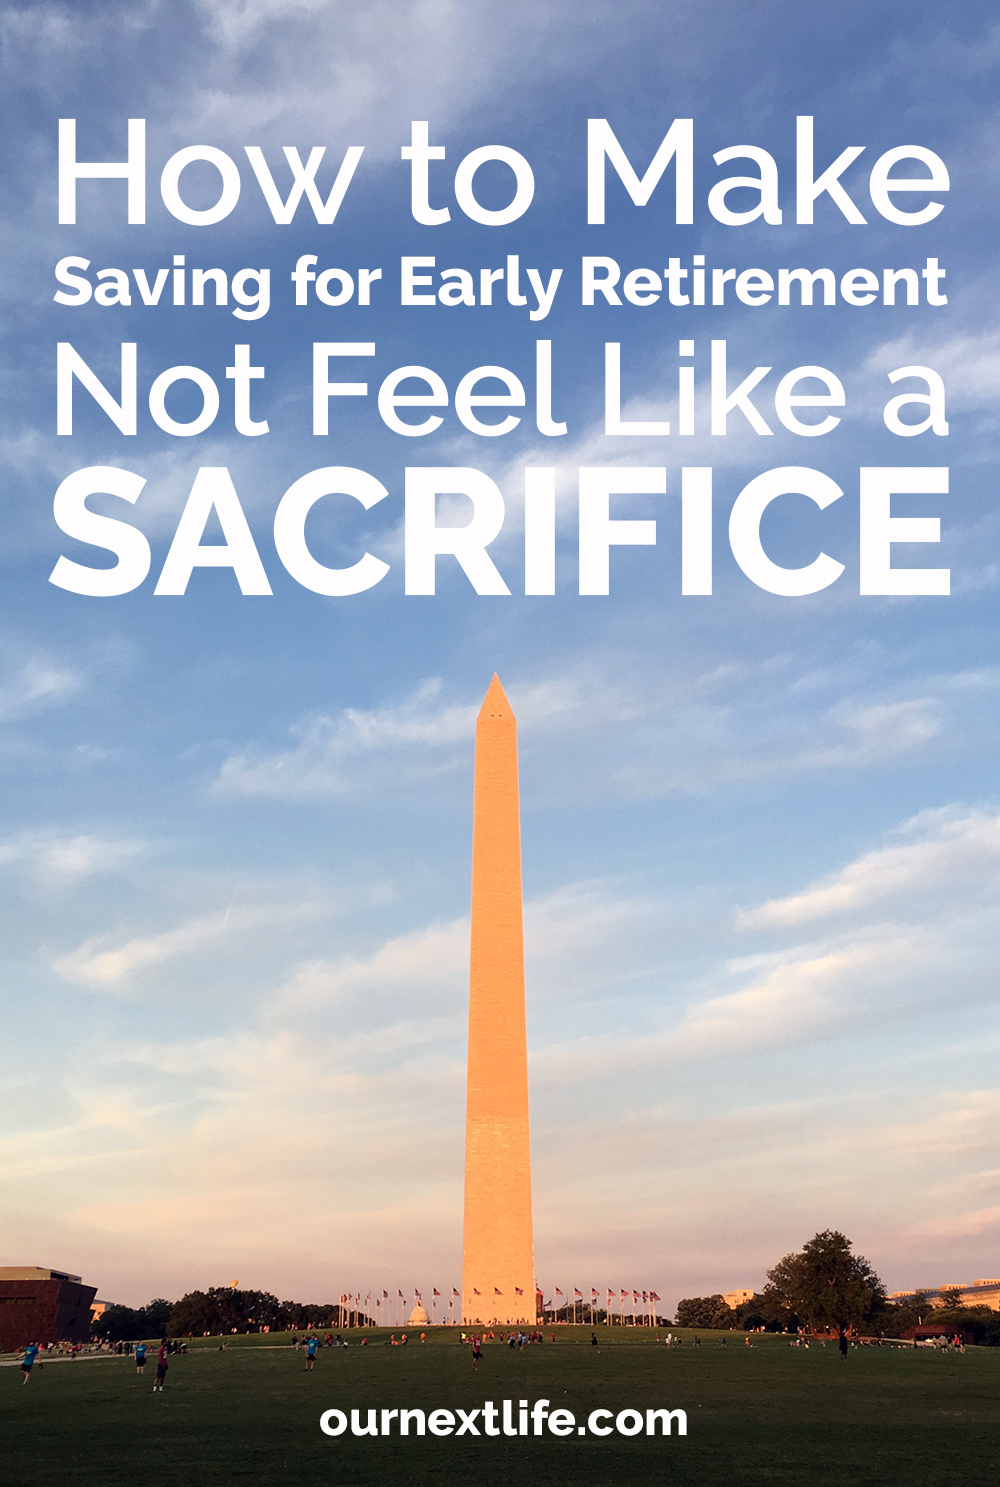 How to make saving for early retirement not feel like a sacrifice // Saving, frugality, retirement savings